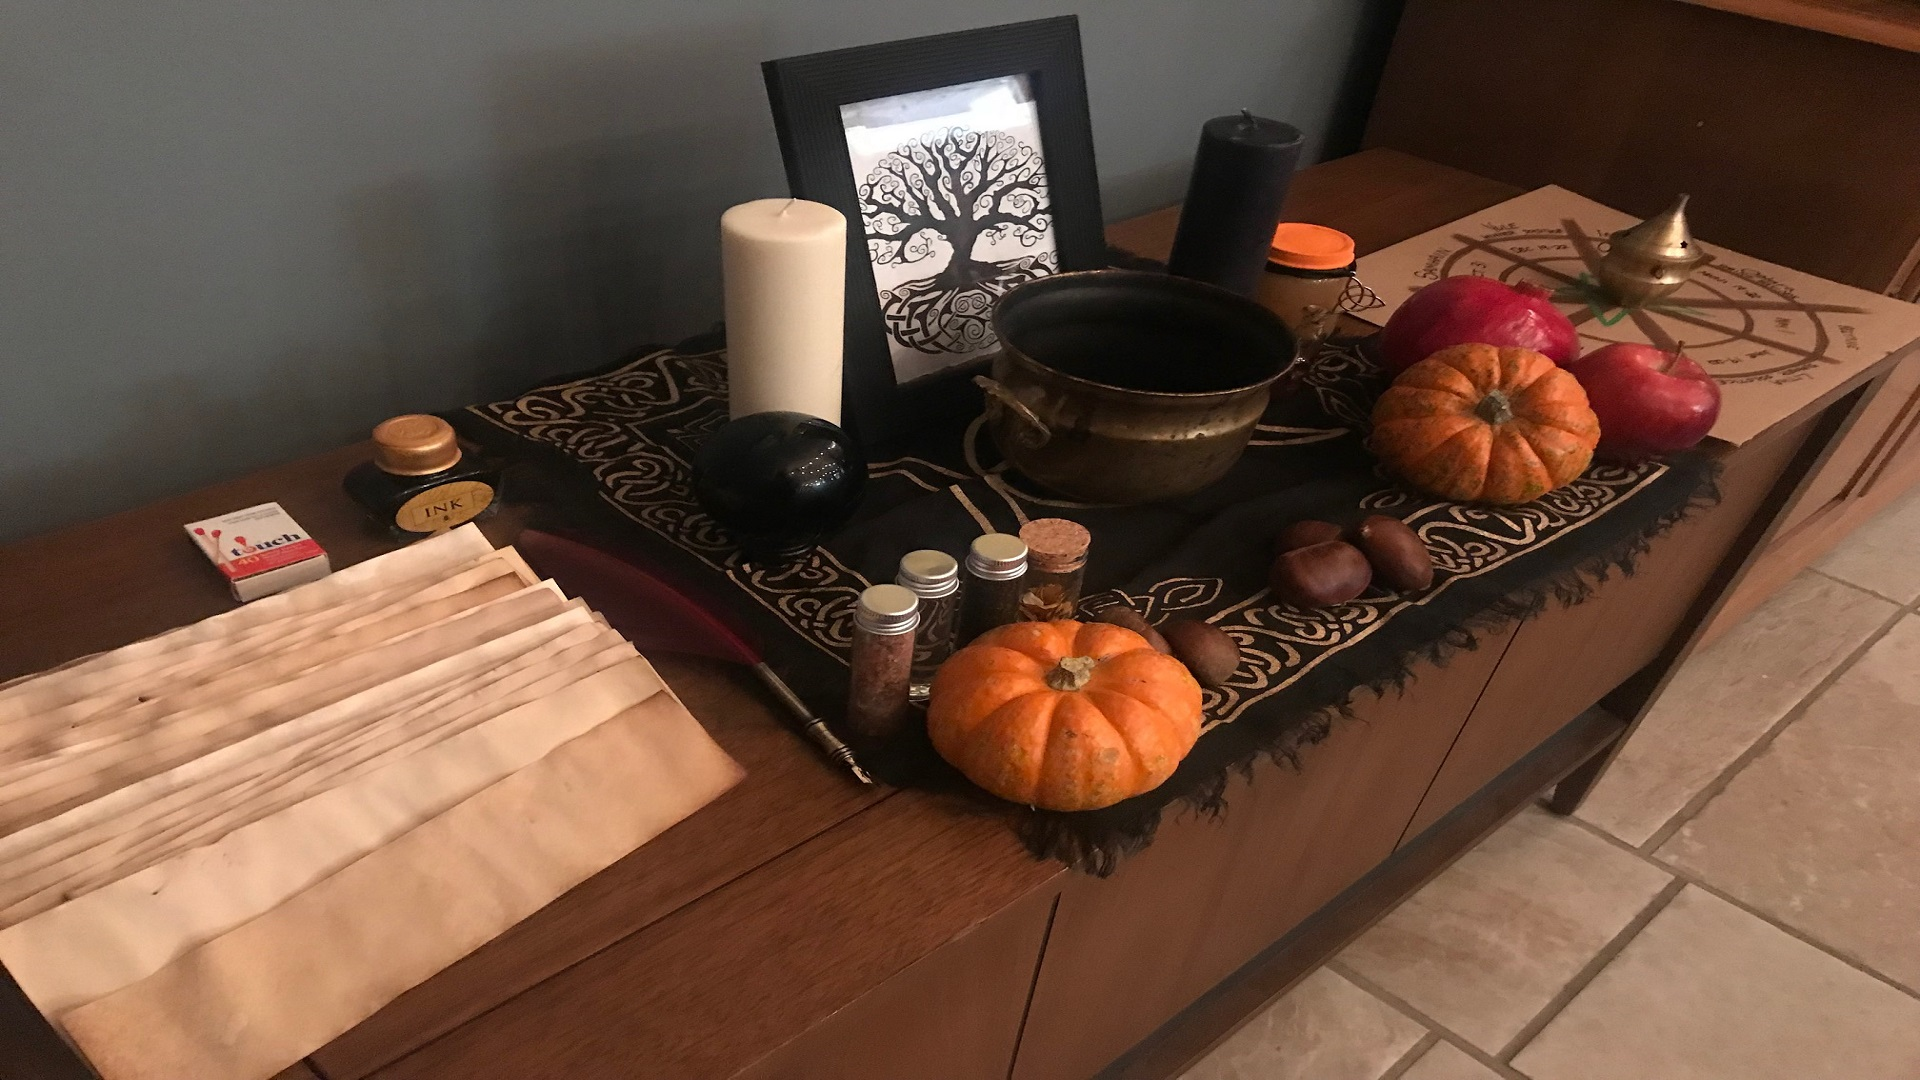 Lethbridge Pagans and Witches celebrate the Festival of Samhain and